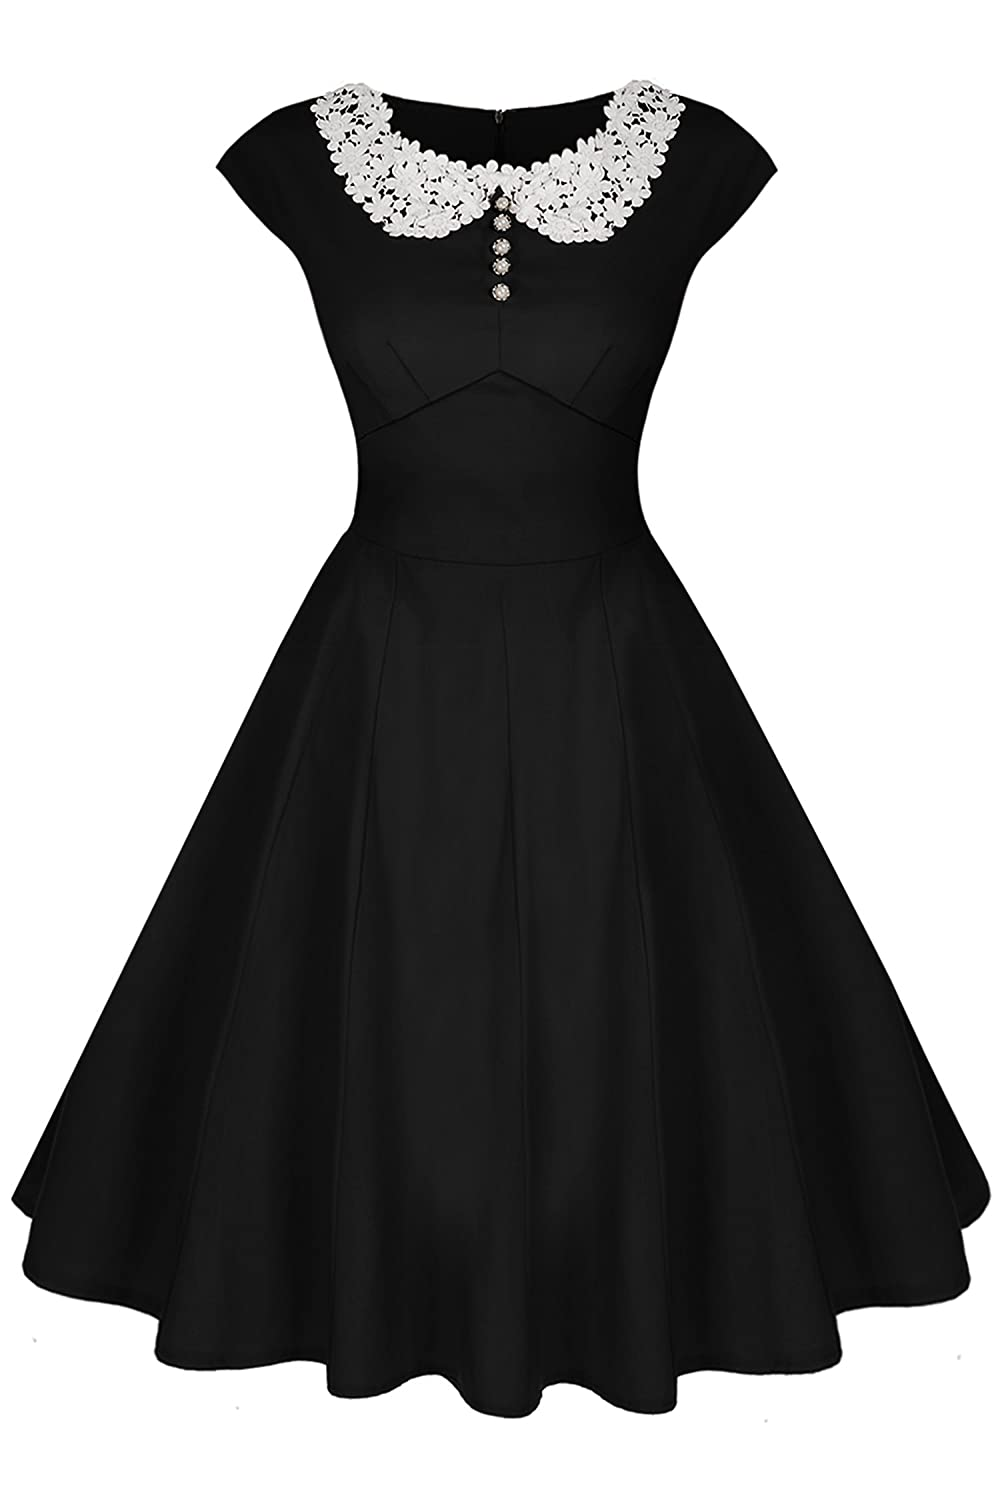 60s 70s Plus Size Dresses, Clothing, Costumes Audrey Hepburn Style 1940s Rockabilly Evening Dress  AT vintagedancer.com